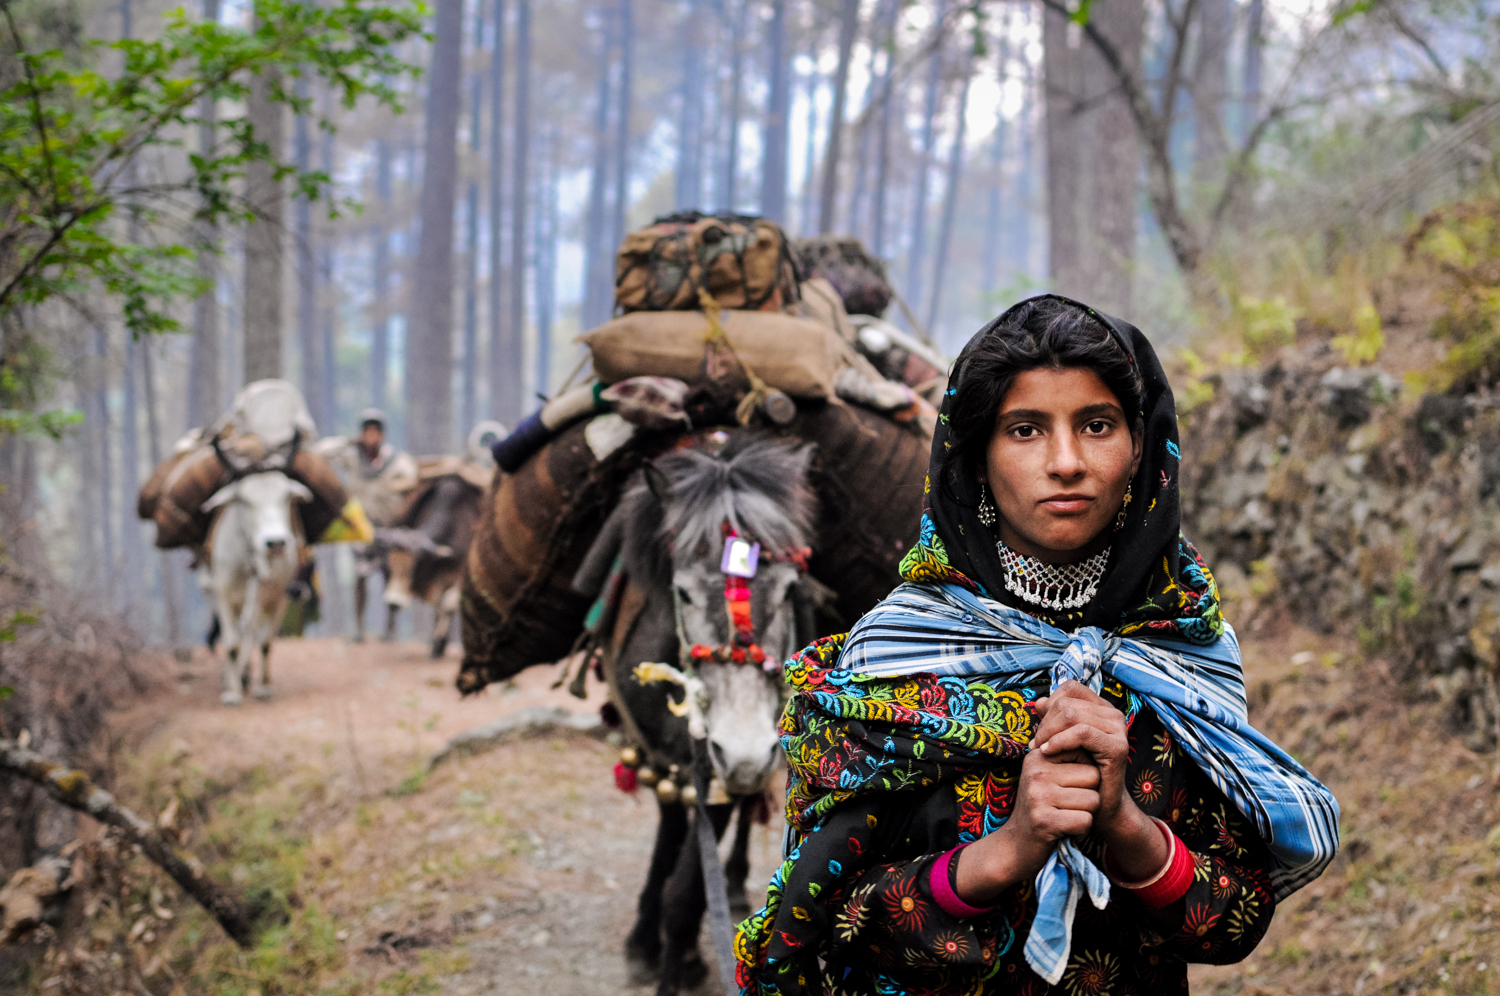 Seventeen-year-old Mariam leads her family's caravan through the foothills of the Himalayas, on the route to the alternate meadow. She's carrying her 2-year-old niece in the plaid shawl slung over her shoulders.